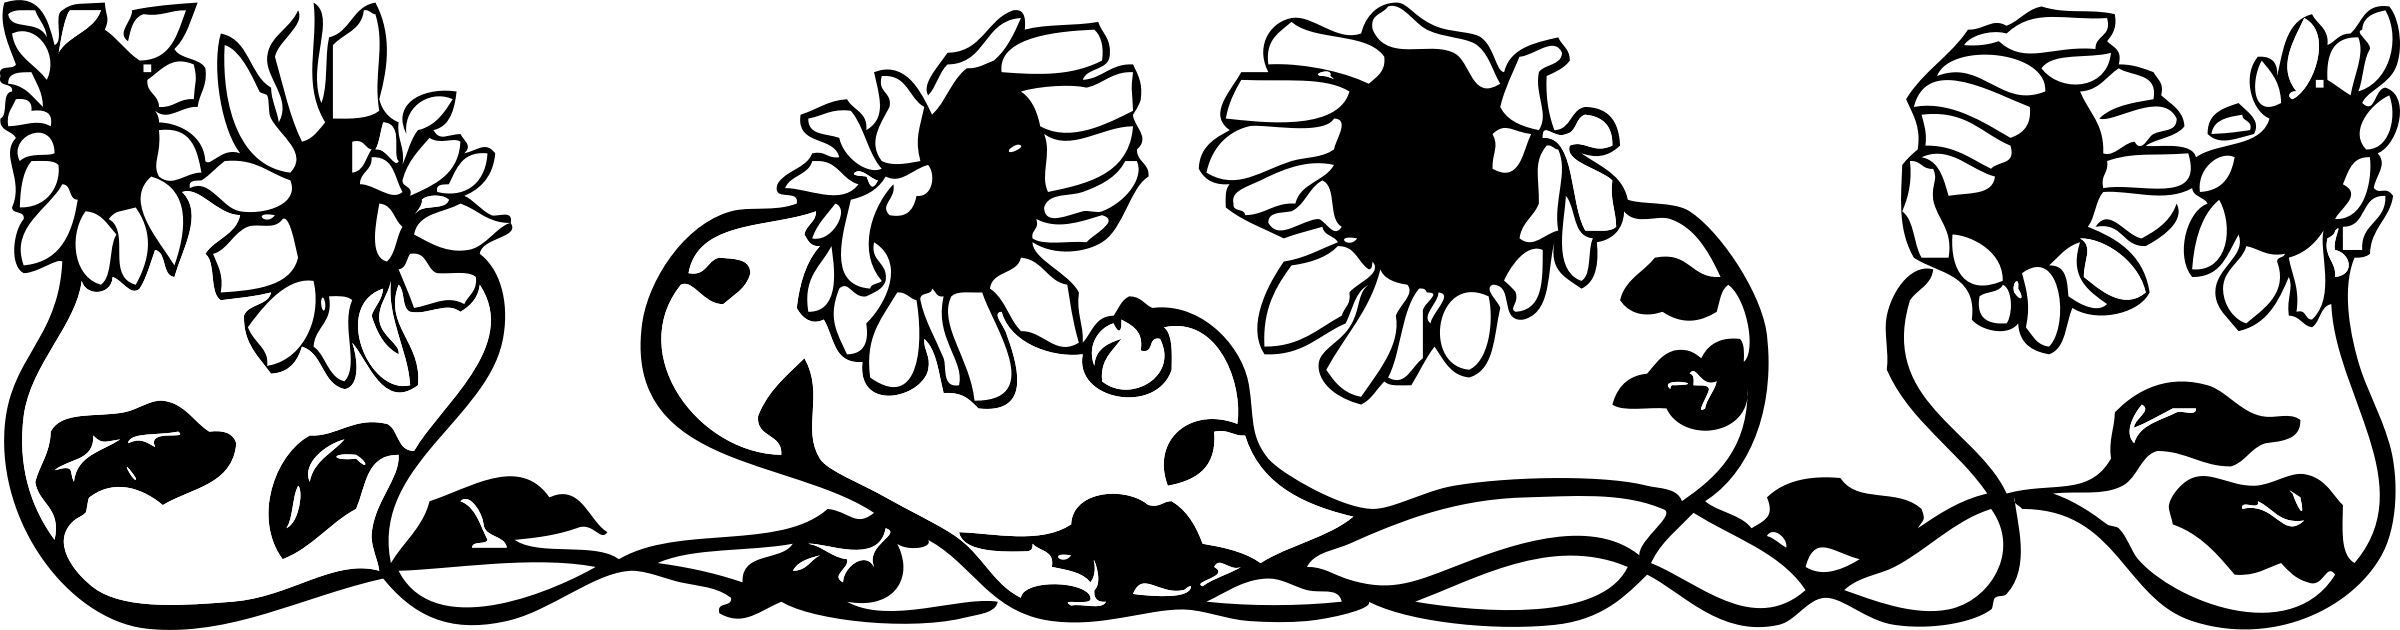 Horizontal flower border clipart black and white clip art freeuse library 28+ Collection of Black And White Sunflower Border Clipart   High ... clip art freeuse library